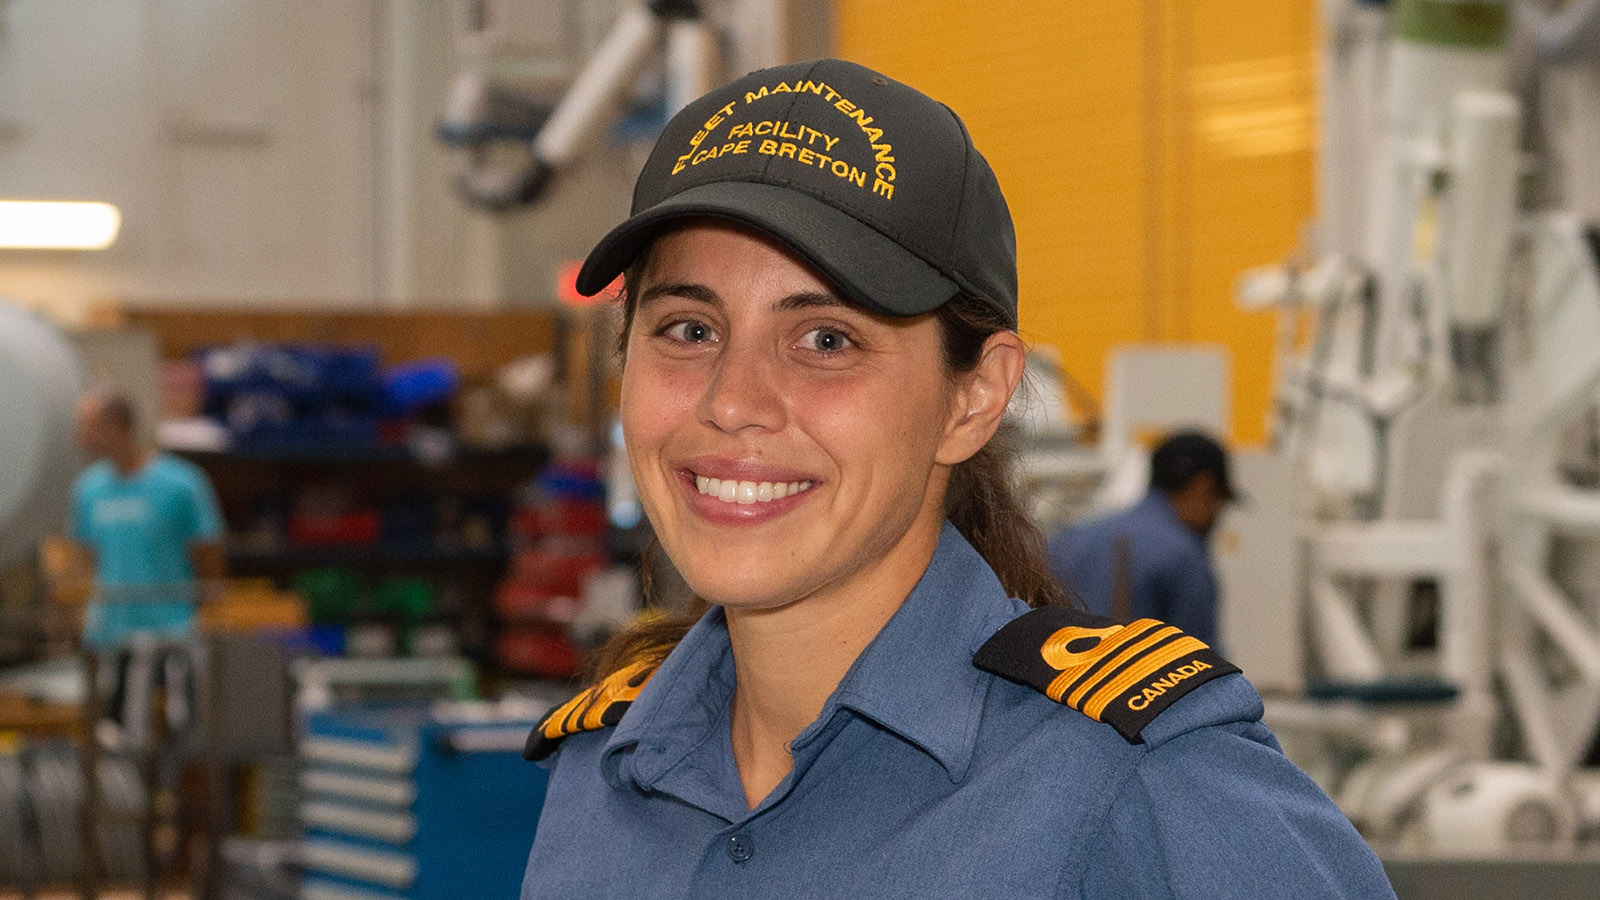 LCdr Calley Gray